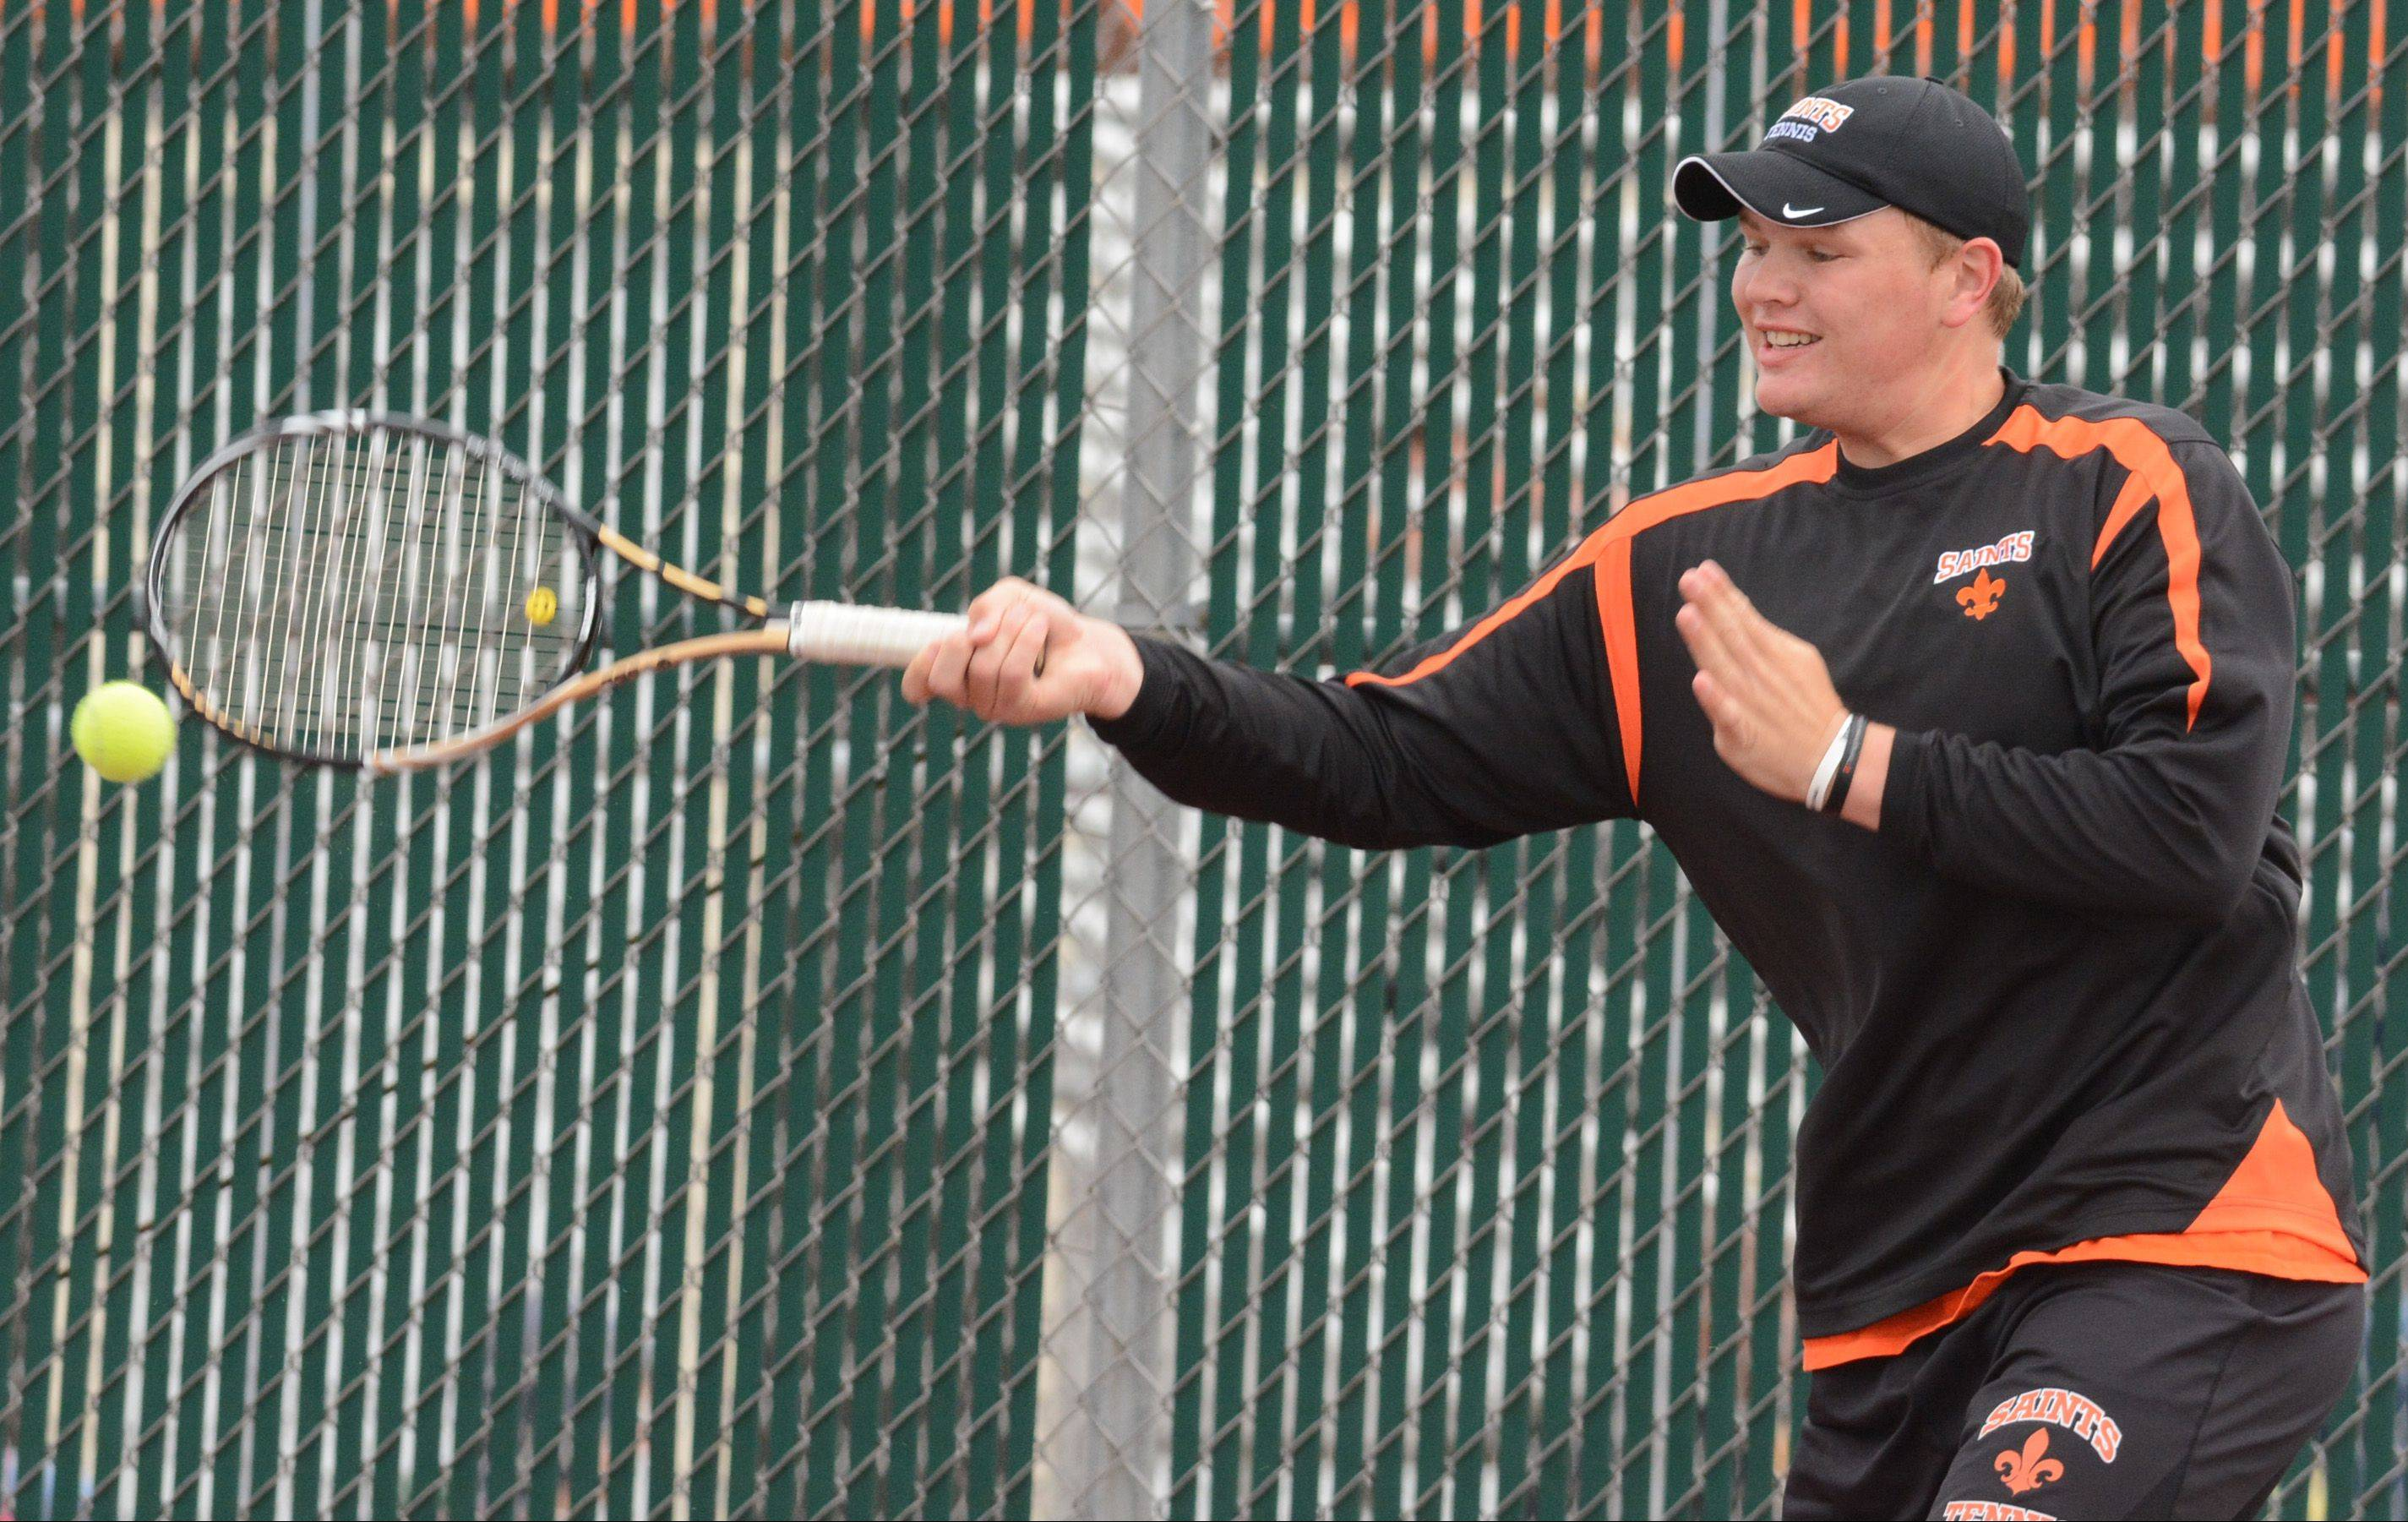 Jasper Koenen of St. Charles East competes at the state boys tennis tournament Saturday